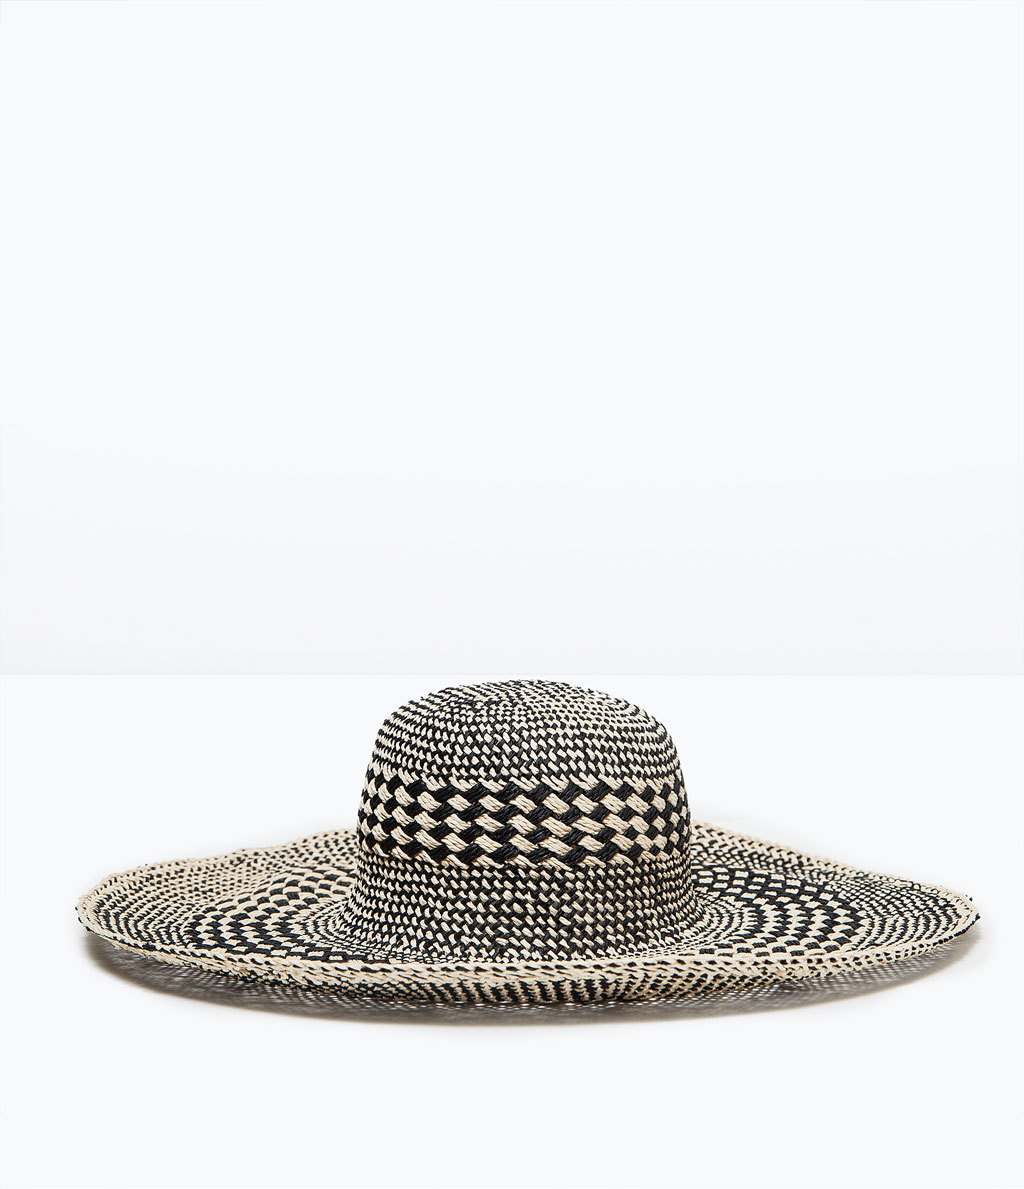 Two Tone Wide Brim Hat - secondary colour: ivory/cream; predominant colour: black; occasions: casual, holiday; type of pattern: large; style: wide brimmed; size: large; material: fabric; pattern: checked/gingham; season: s/s 2015; wardrobe: holiday